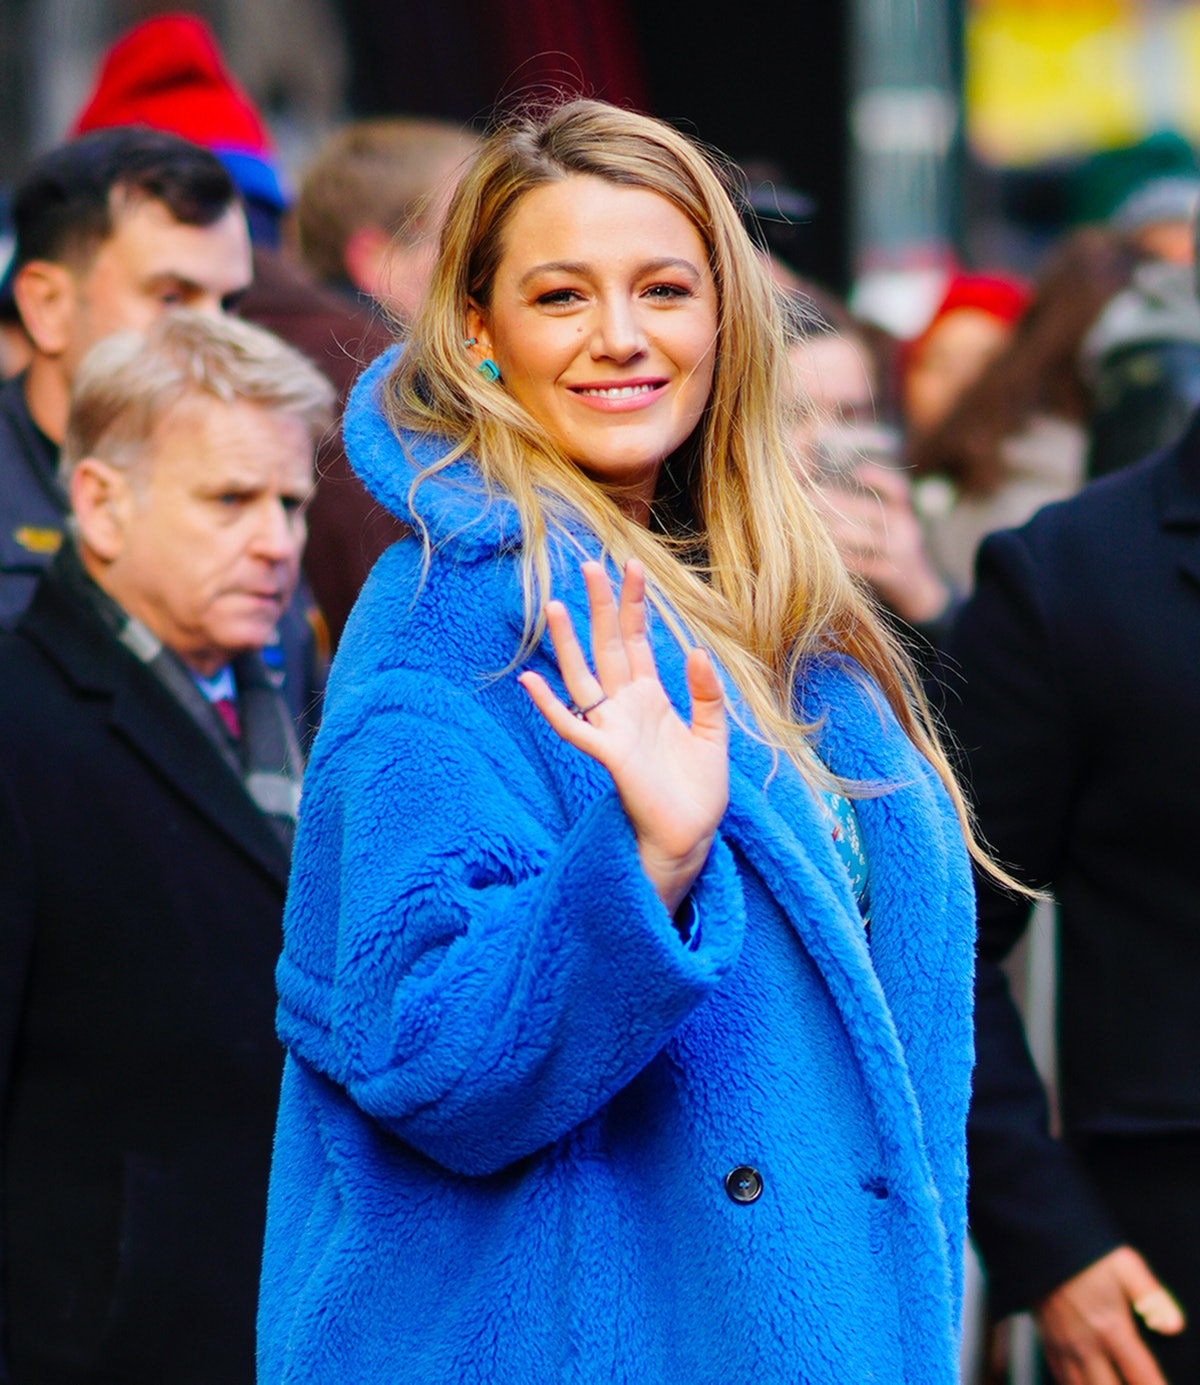 Blake Lively departs GMA on January 28, 2020 in New York City.